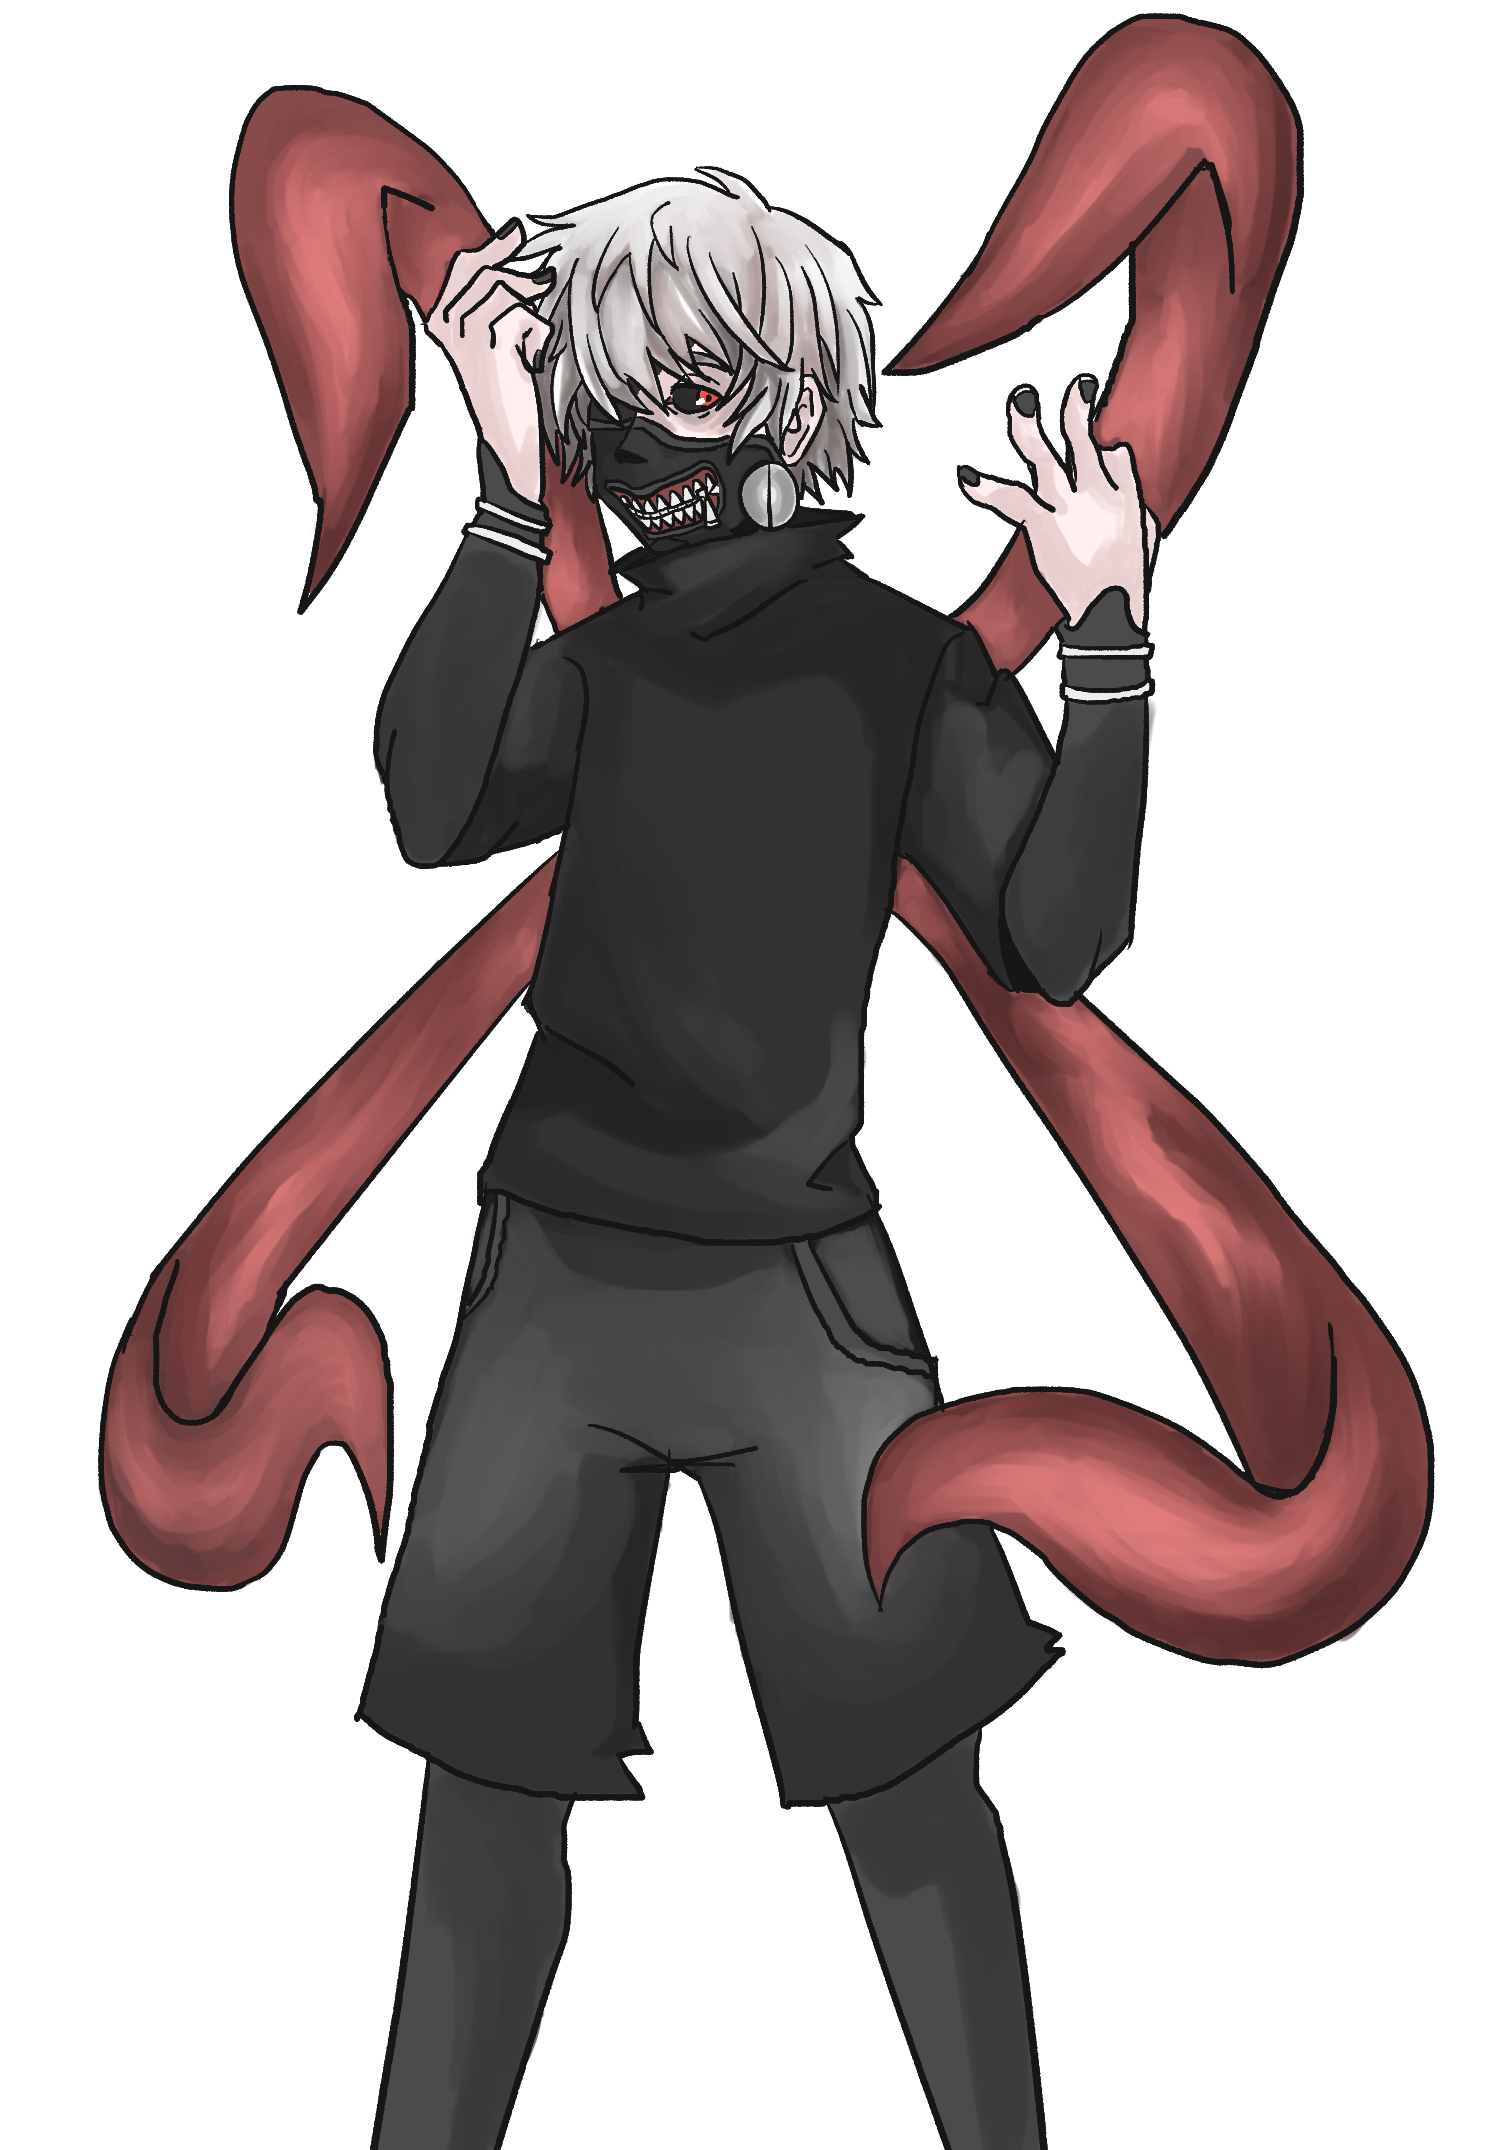 kaneki from tokyo ghoul by brandonisnear on newgrounds kaneki from tokyo ghoul by